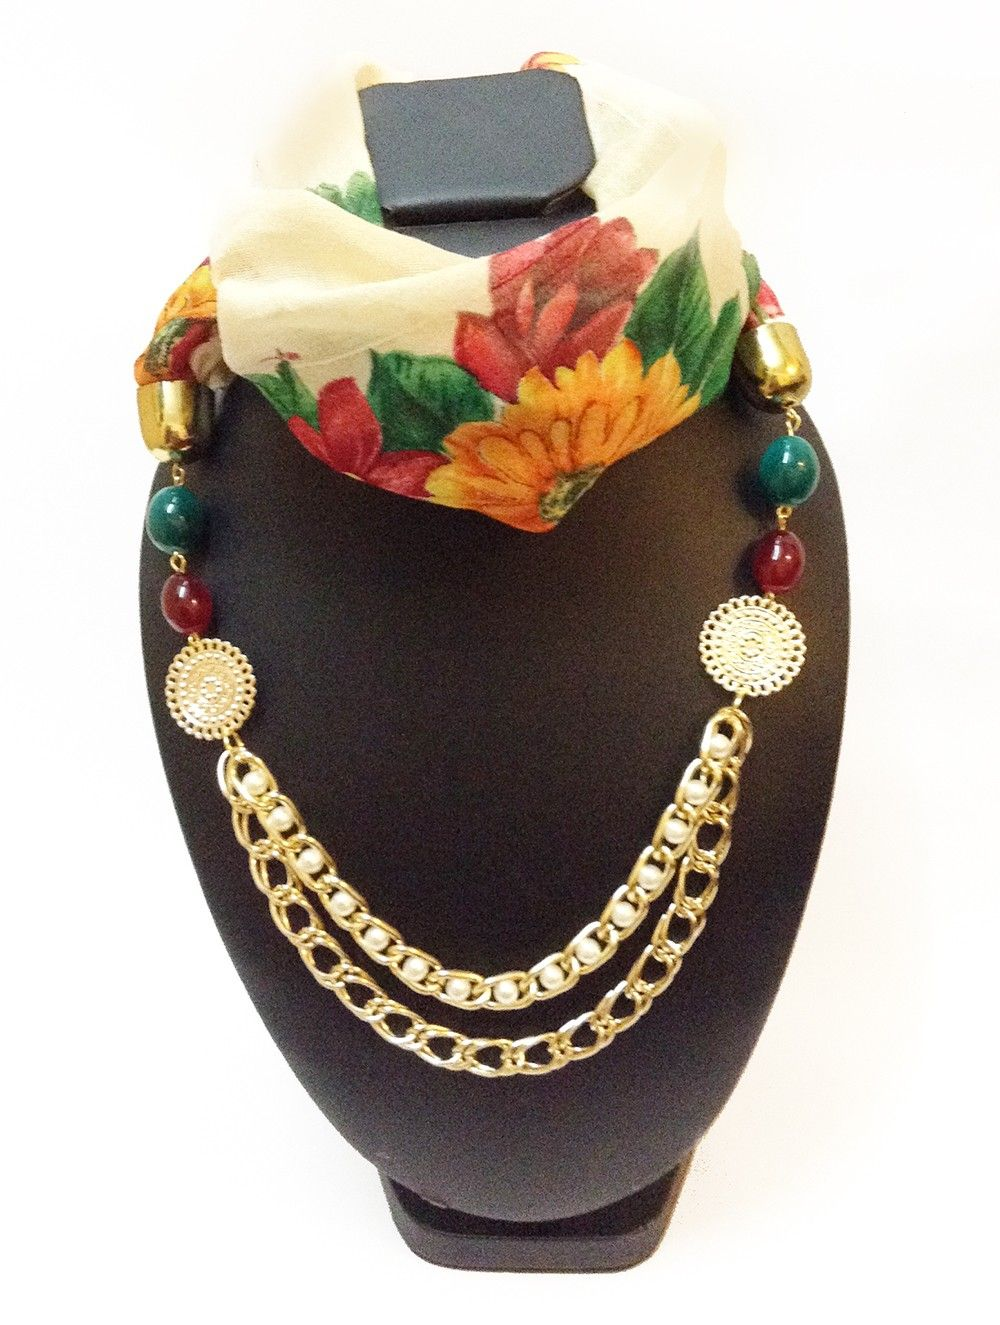 Raw Silk Off-white Butterfly And Red Floral Print Necklace Scarf - Lime